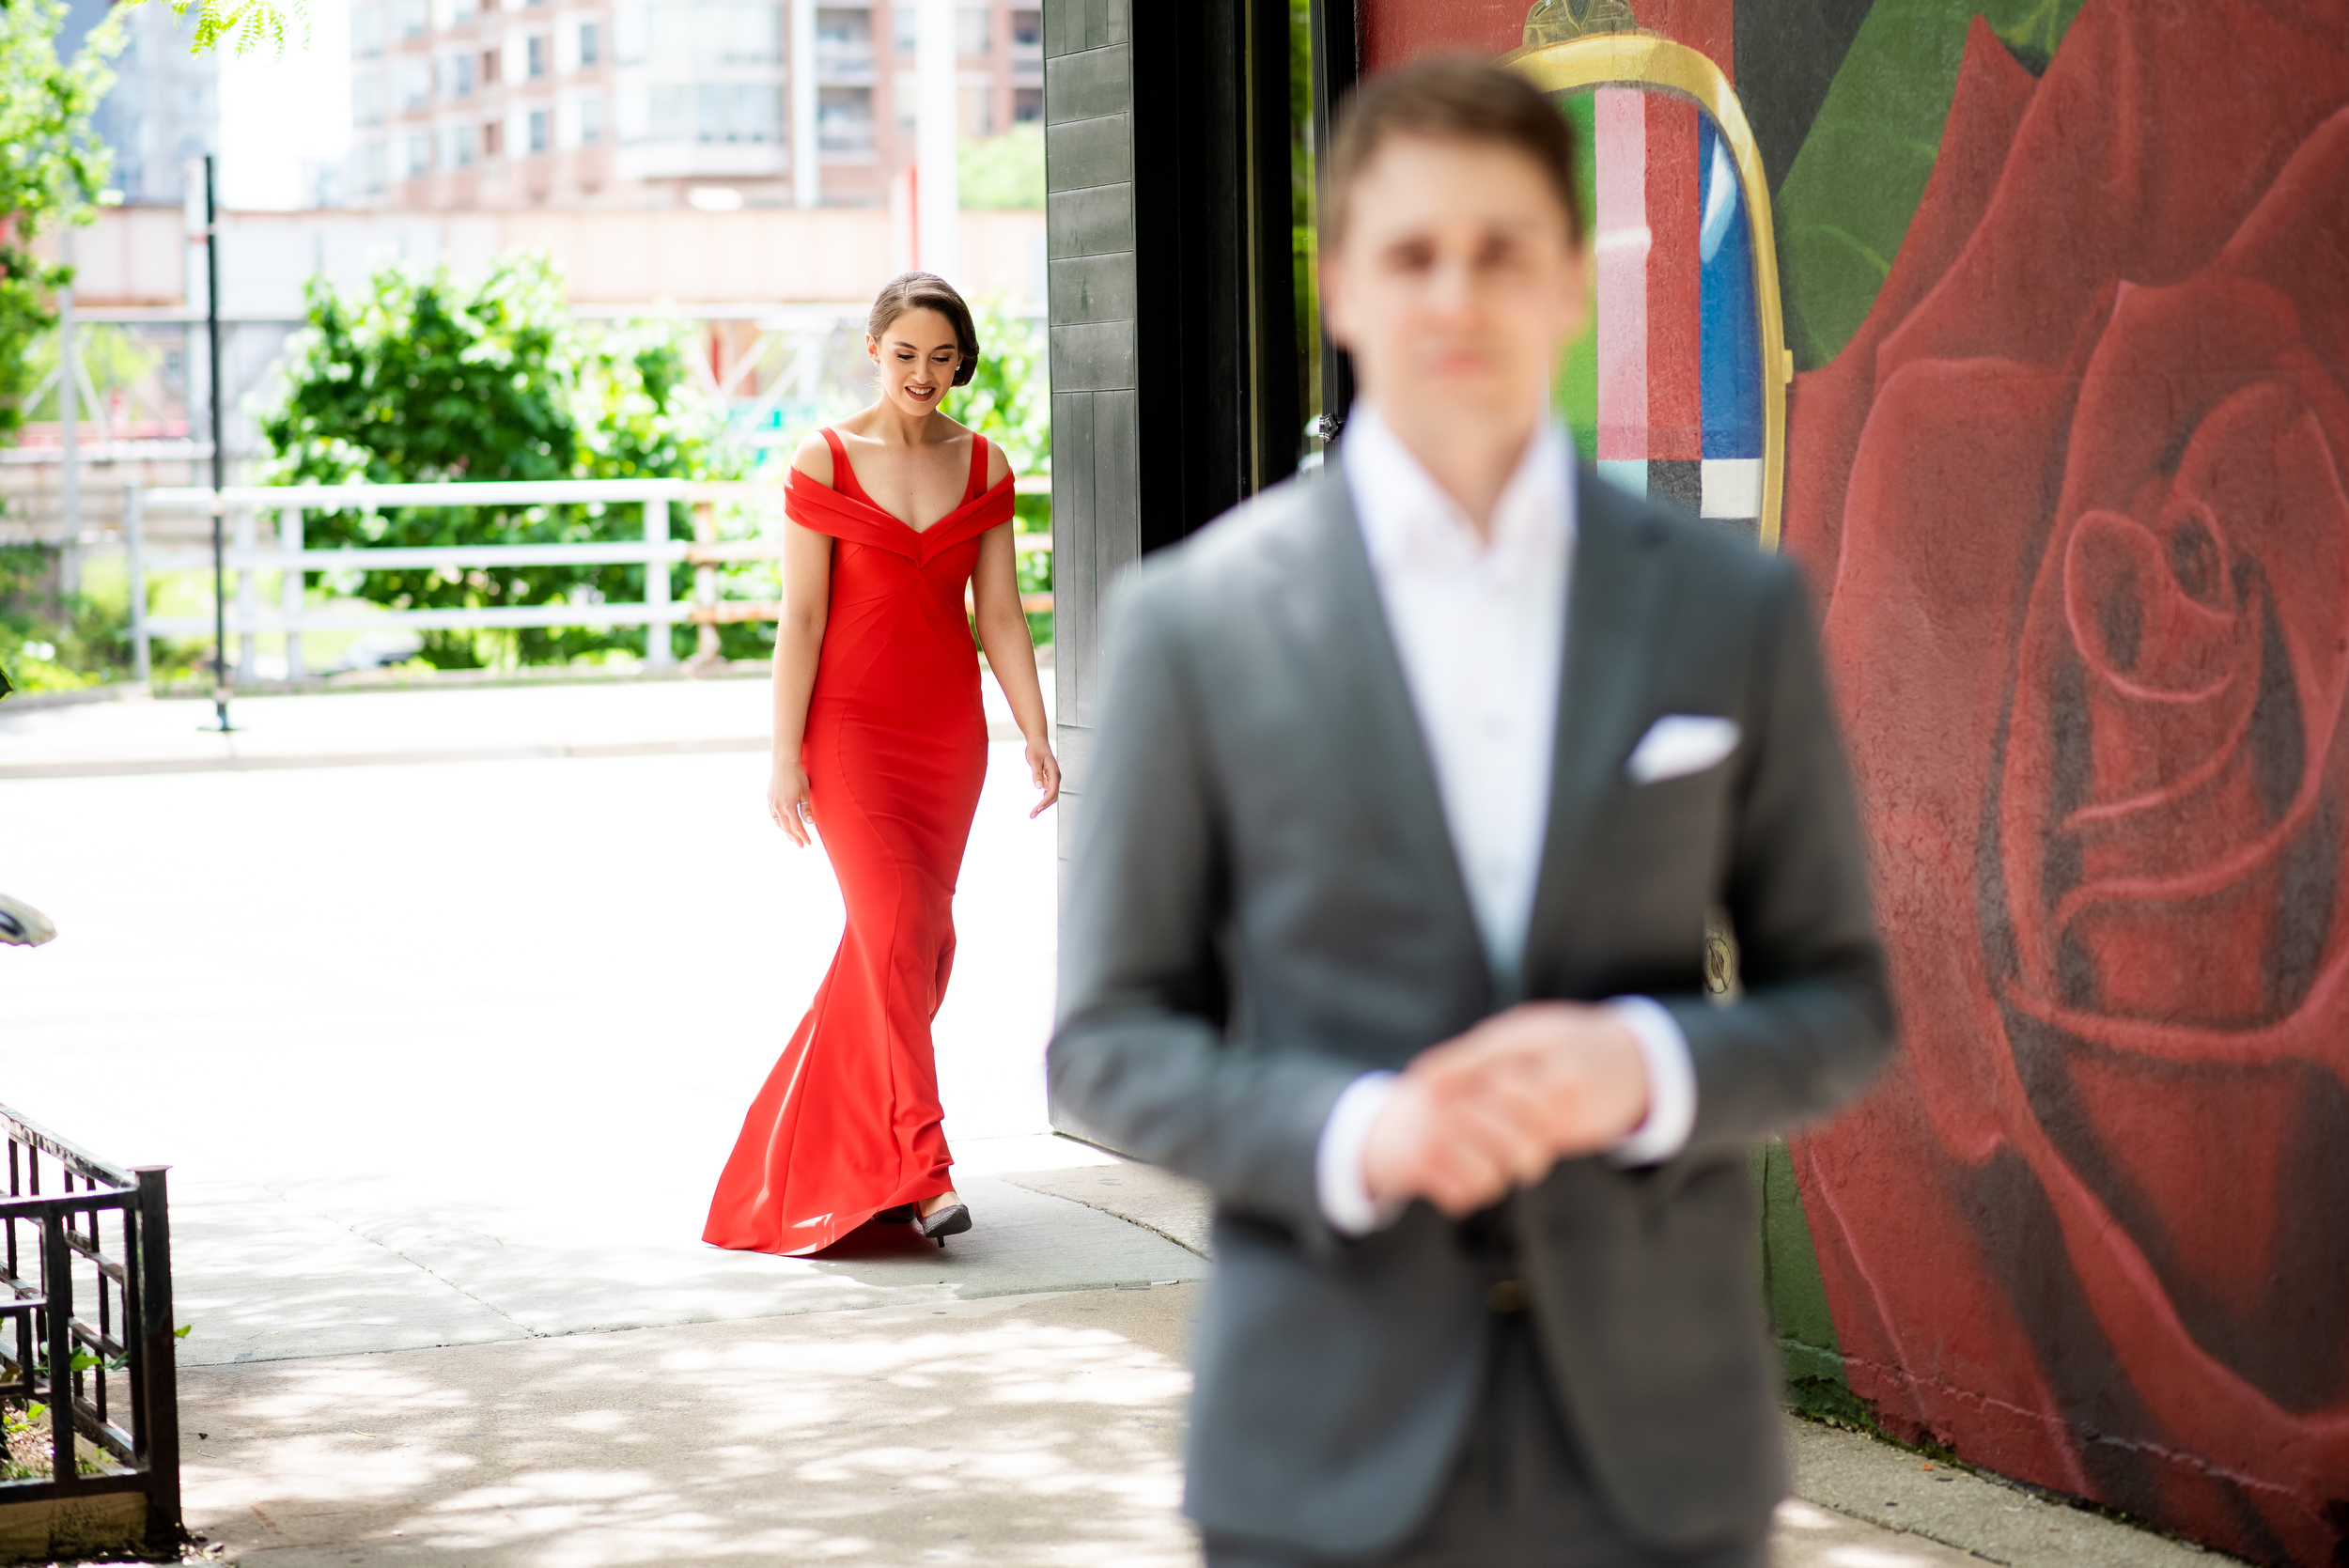 Wedding first look: Carnivale Chicago wedding captured by J Brown Photography